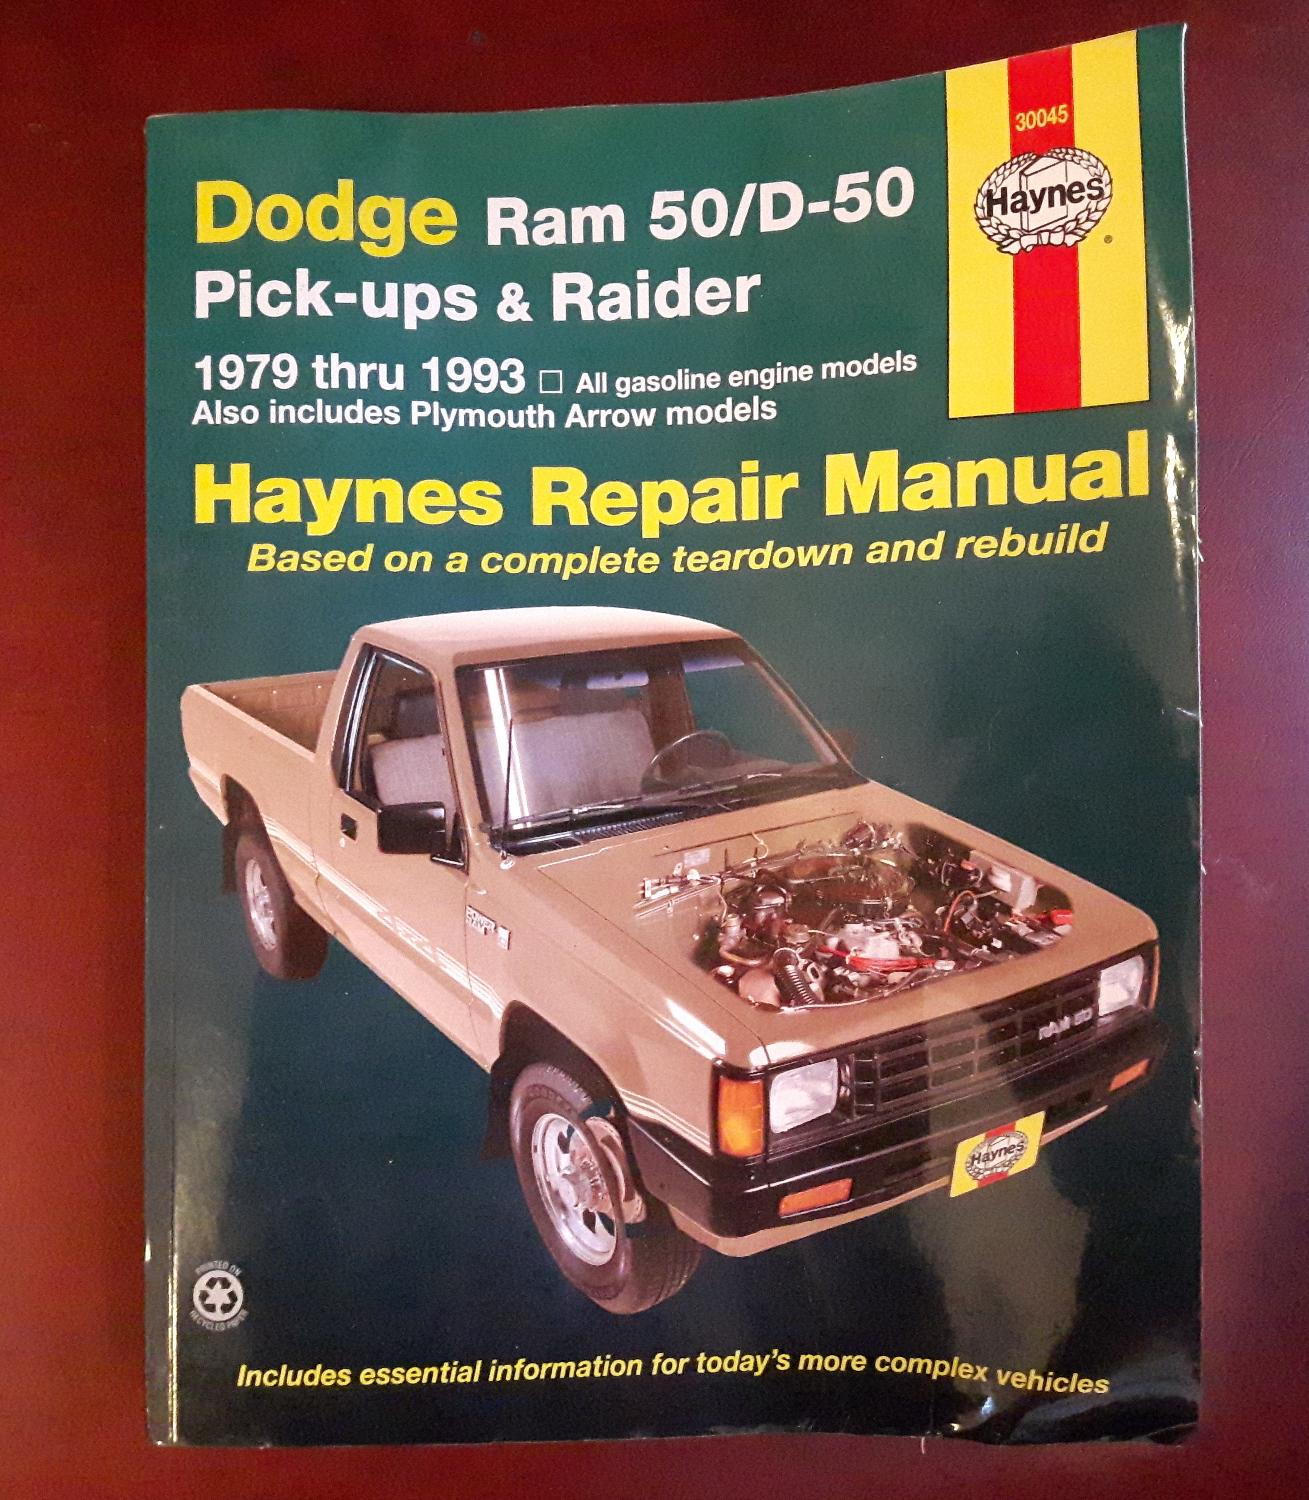 Best Haynes Repair Manual - Dodge Ram 50d-50 Pick-ups & Raider 1979 Thru  1993 - $15.00 - Gibsons - Cross Posted for sale in Gibsons, British  Columbia for ...